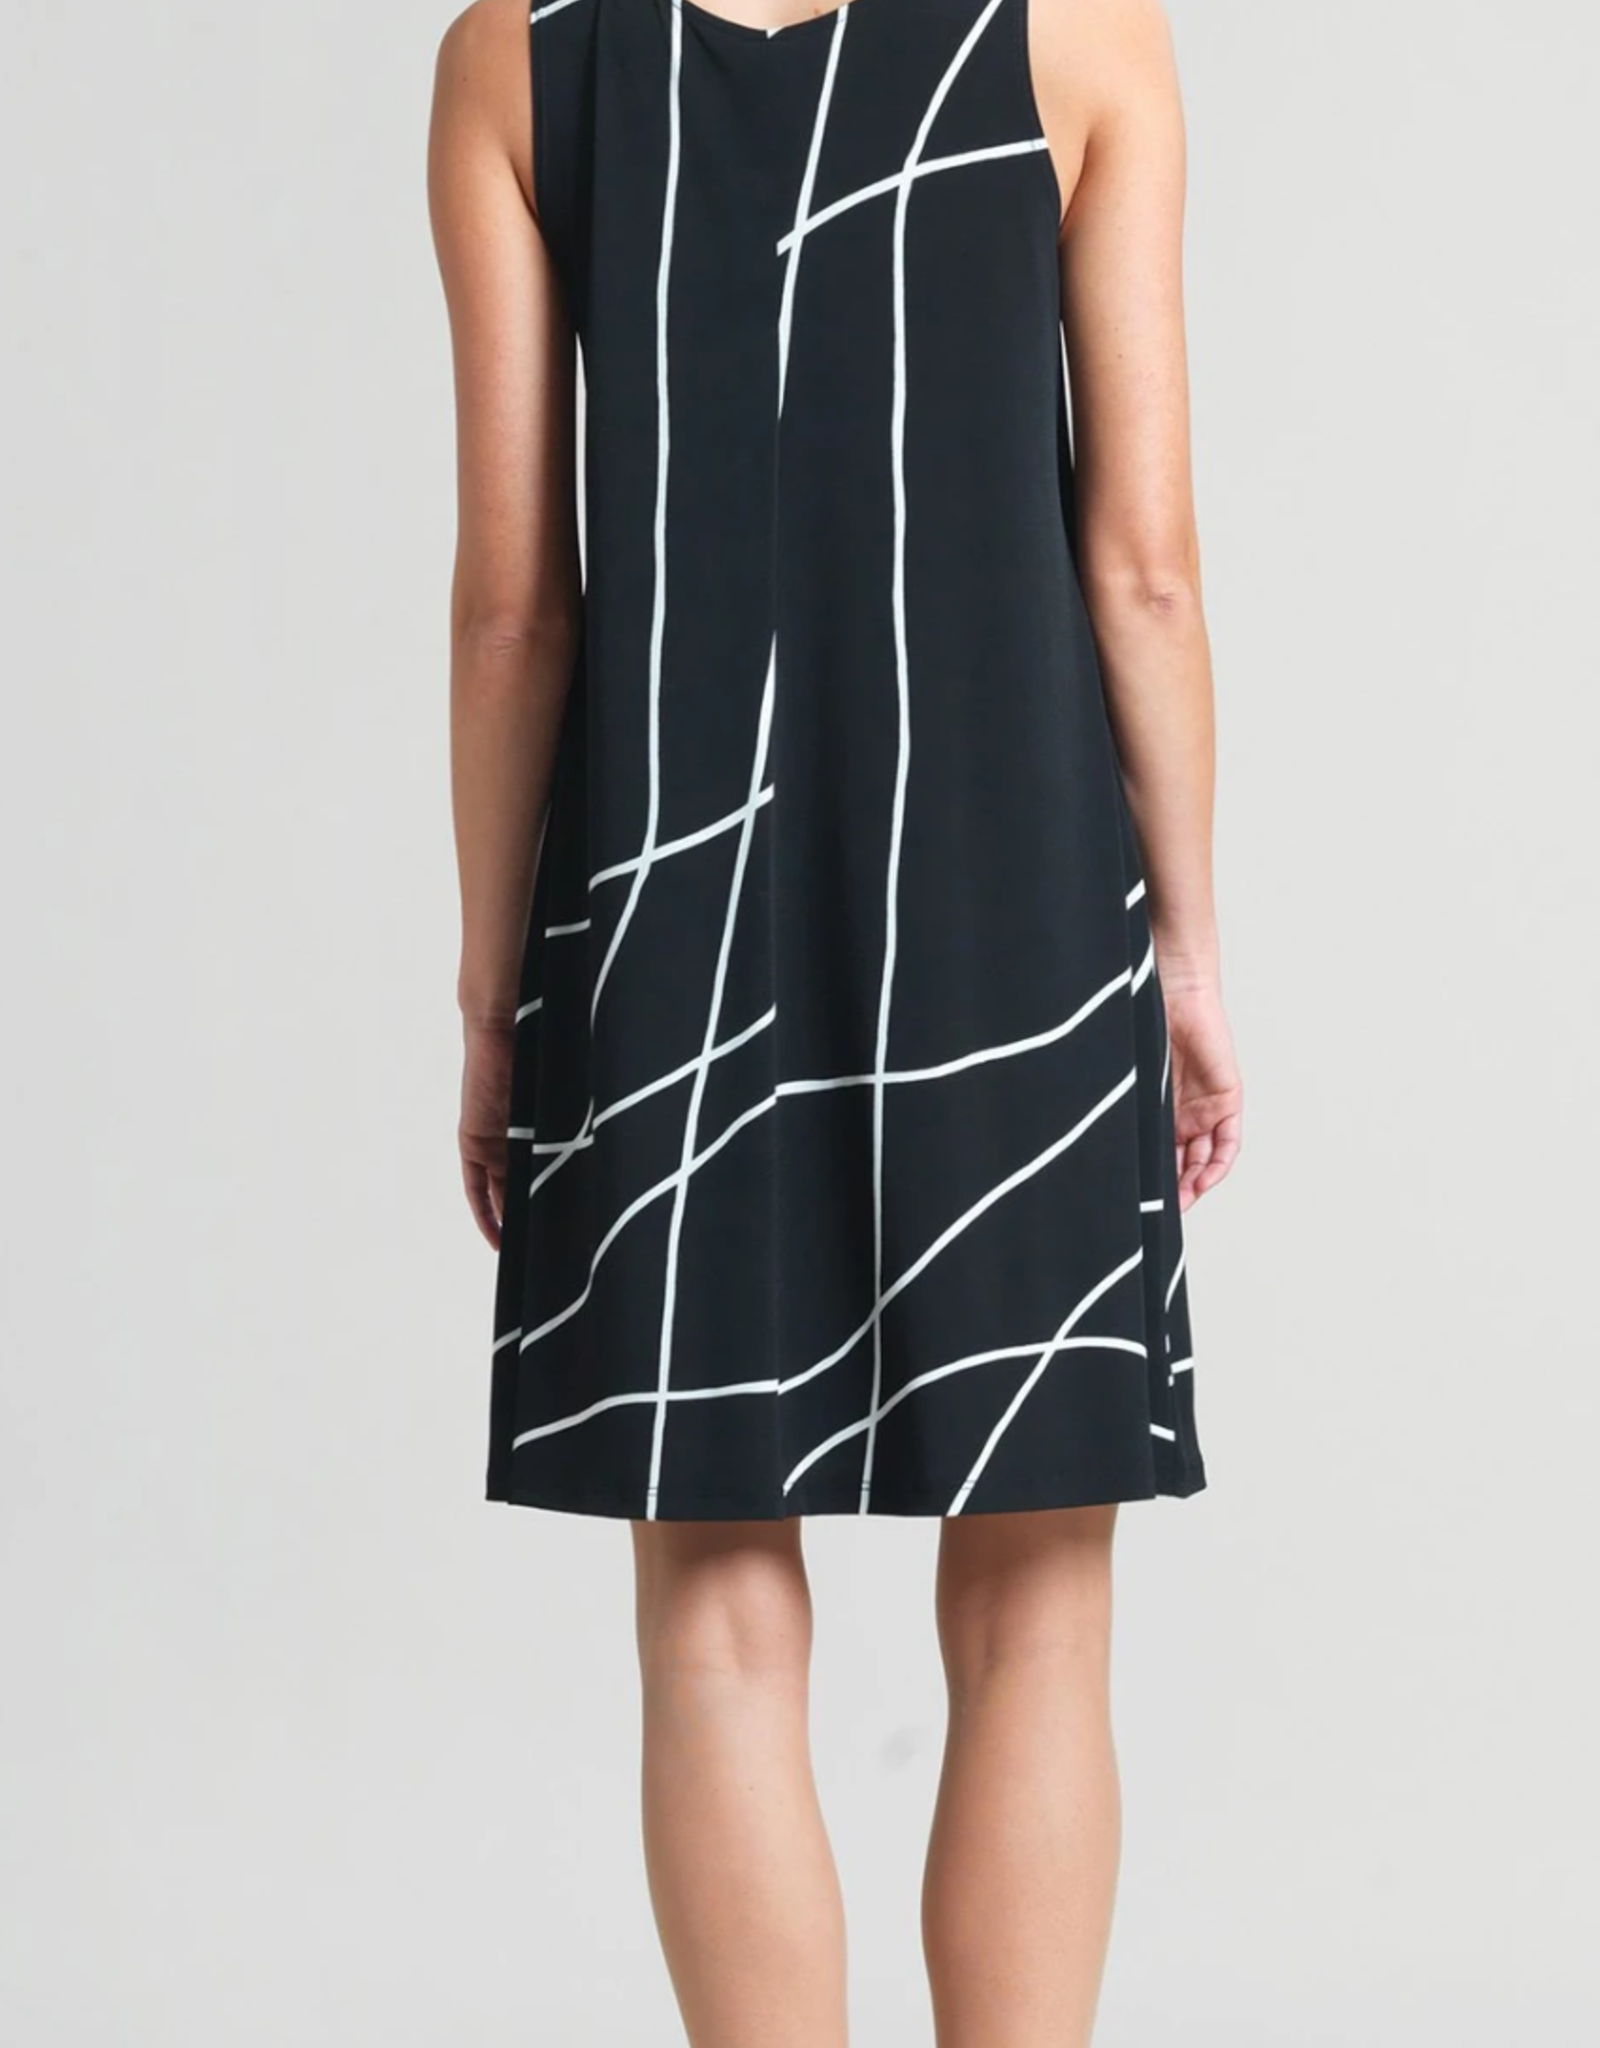 Ciao Bella Swirl Line Swing Dress